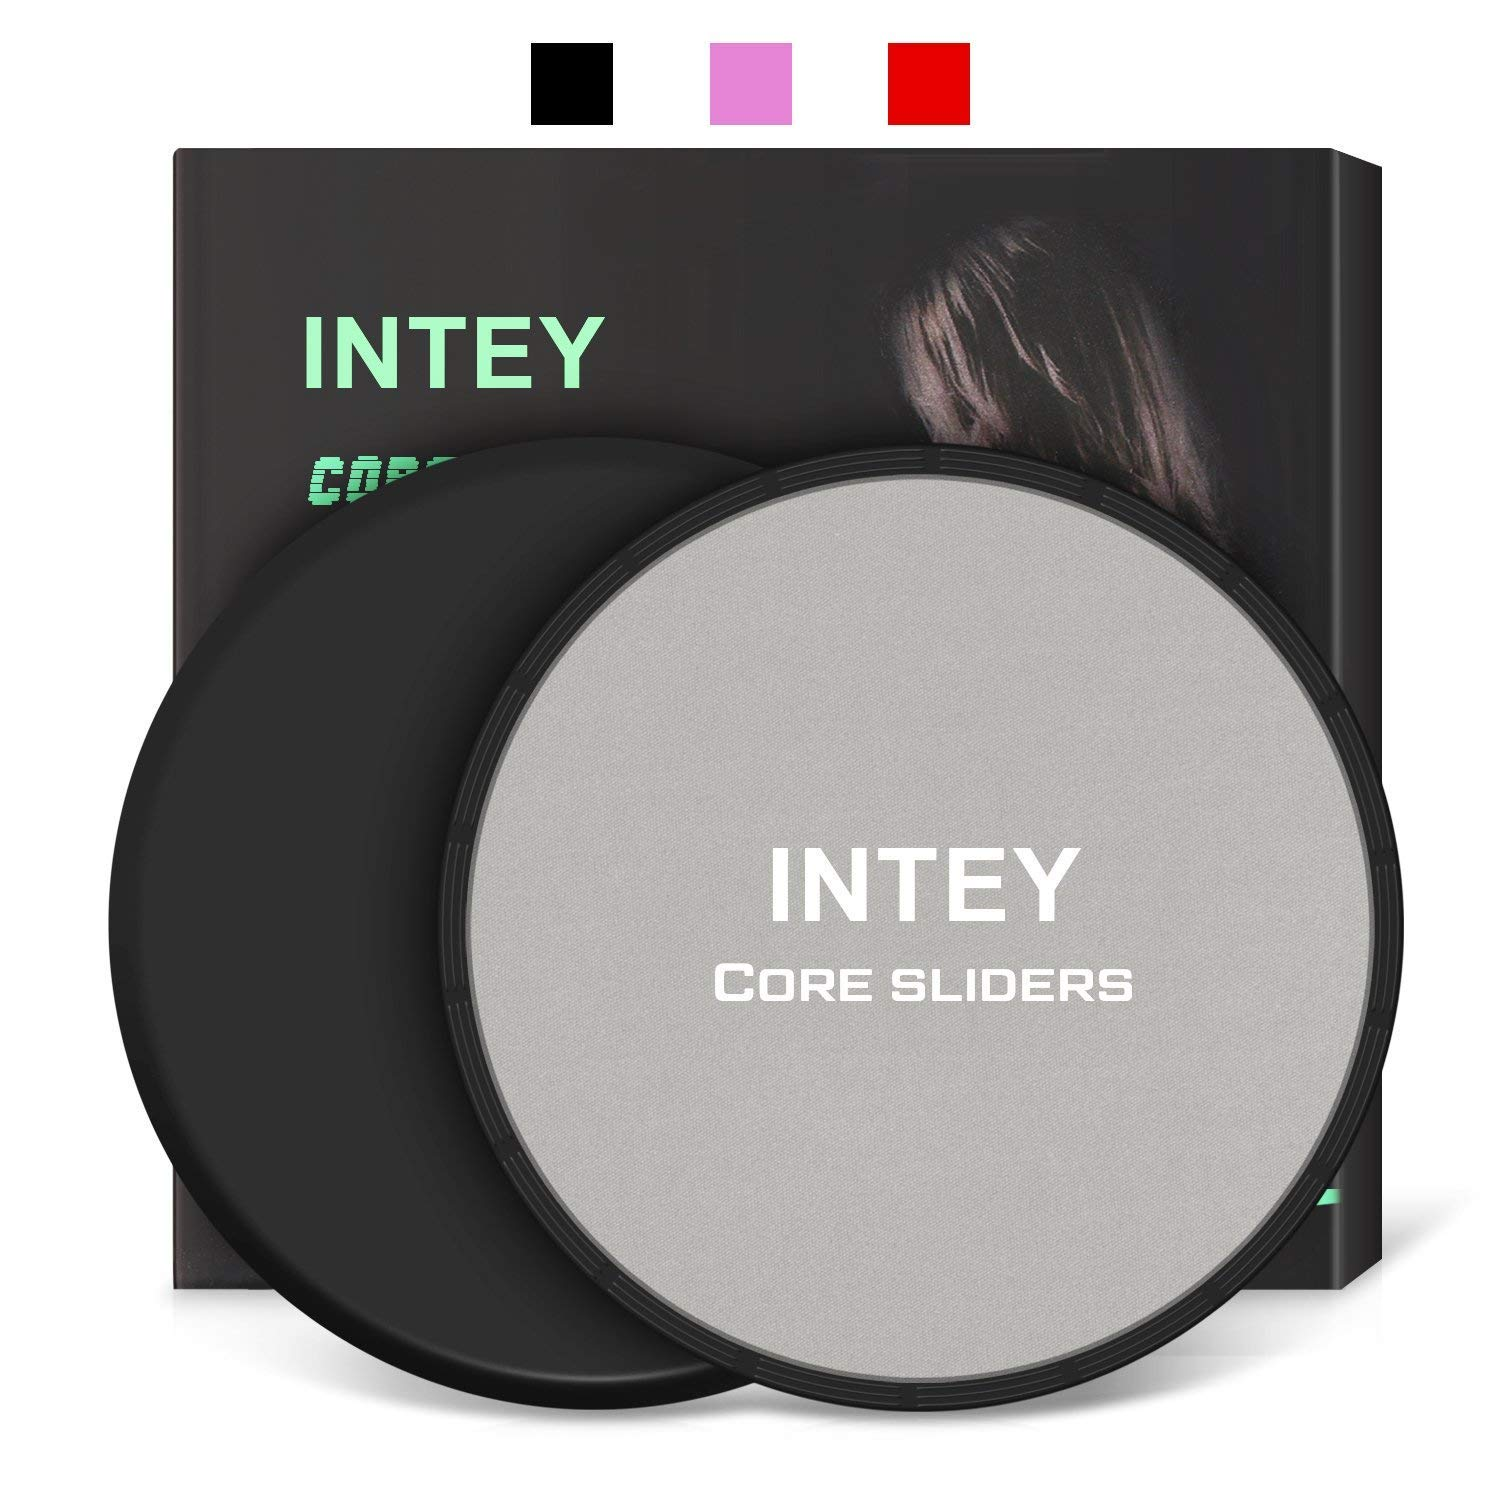 INTEY Exercise Sliders Fitness Workout Sliders Gliding Discs. Dual Sided Use on Carpet or Hardwood Floors, Bonus Carry Bag and Gift Box by INTEY (Image #1)